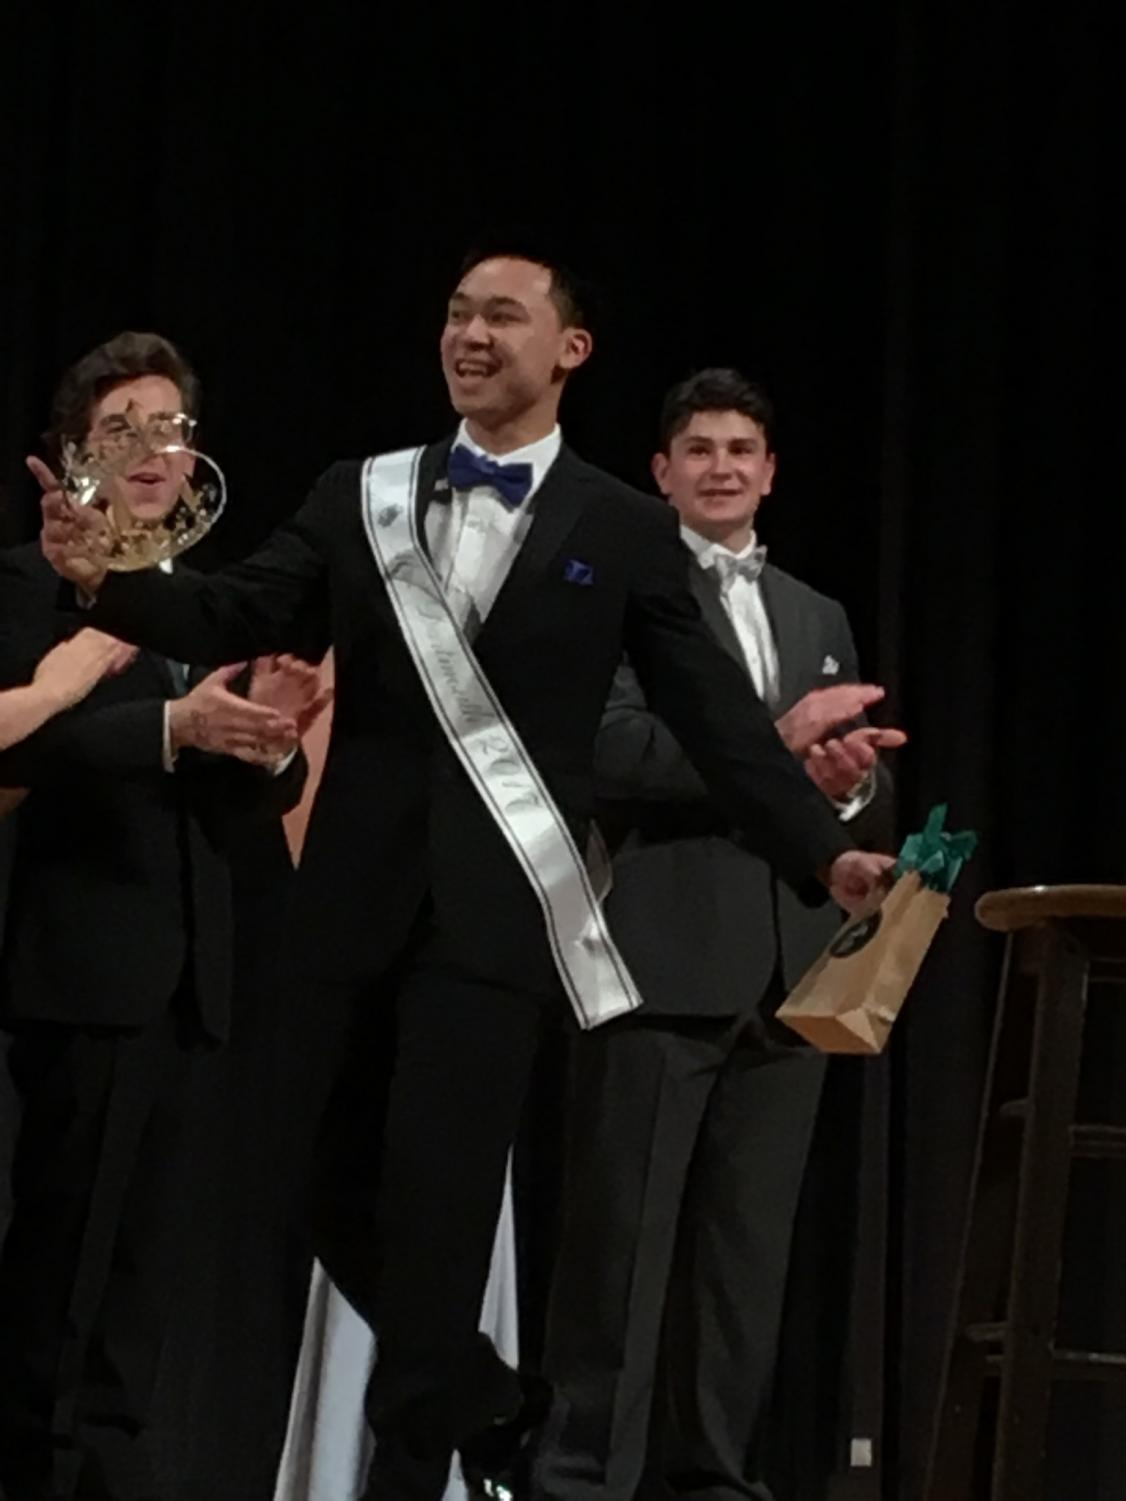 Senior Anthony Lee accepts the crown as the 2017 Mr. Dartmouth.